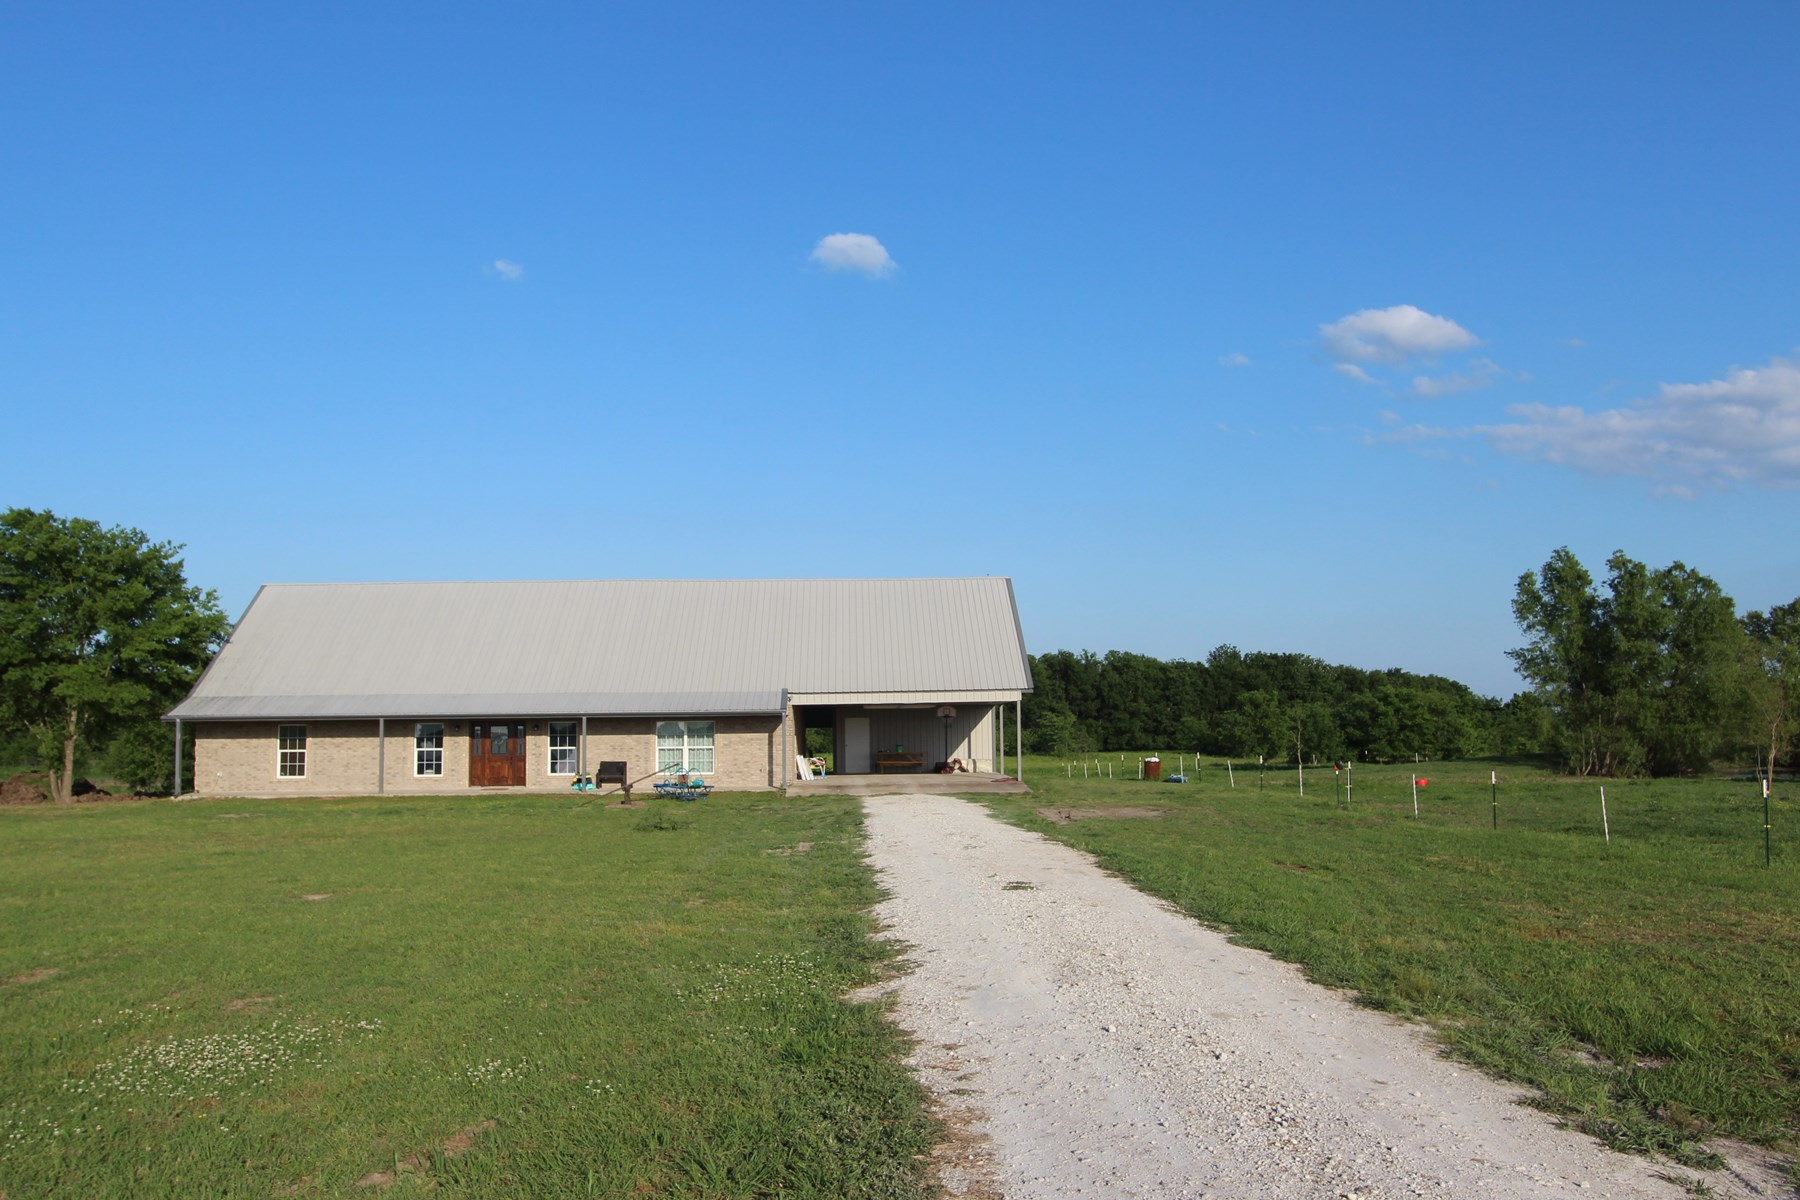 Ranch Style Country Home on Acreage for Sale Red River Co TX